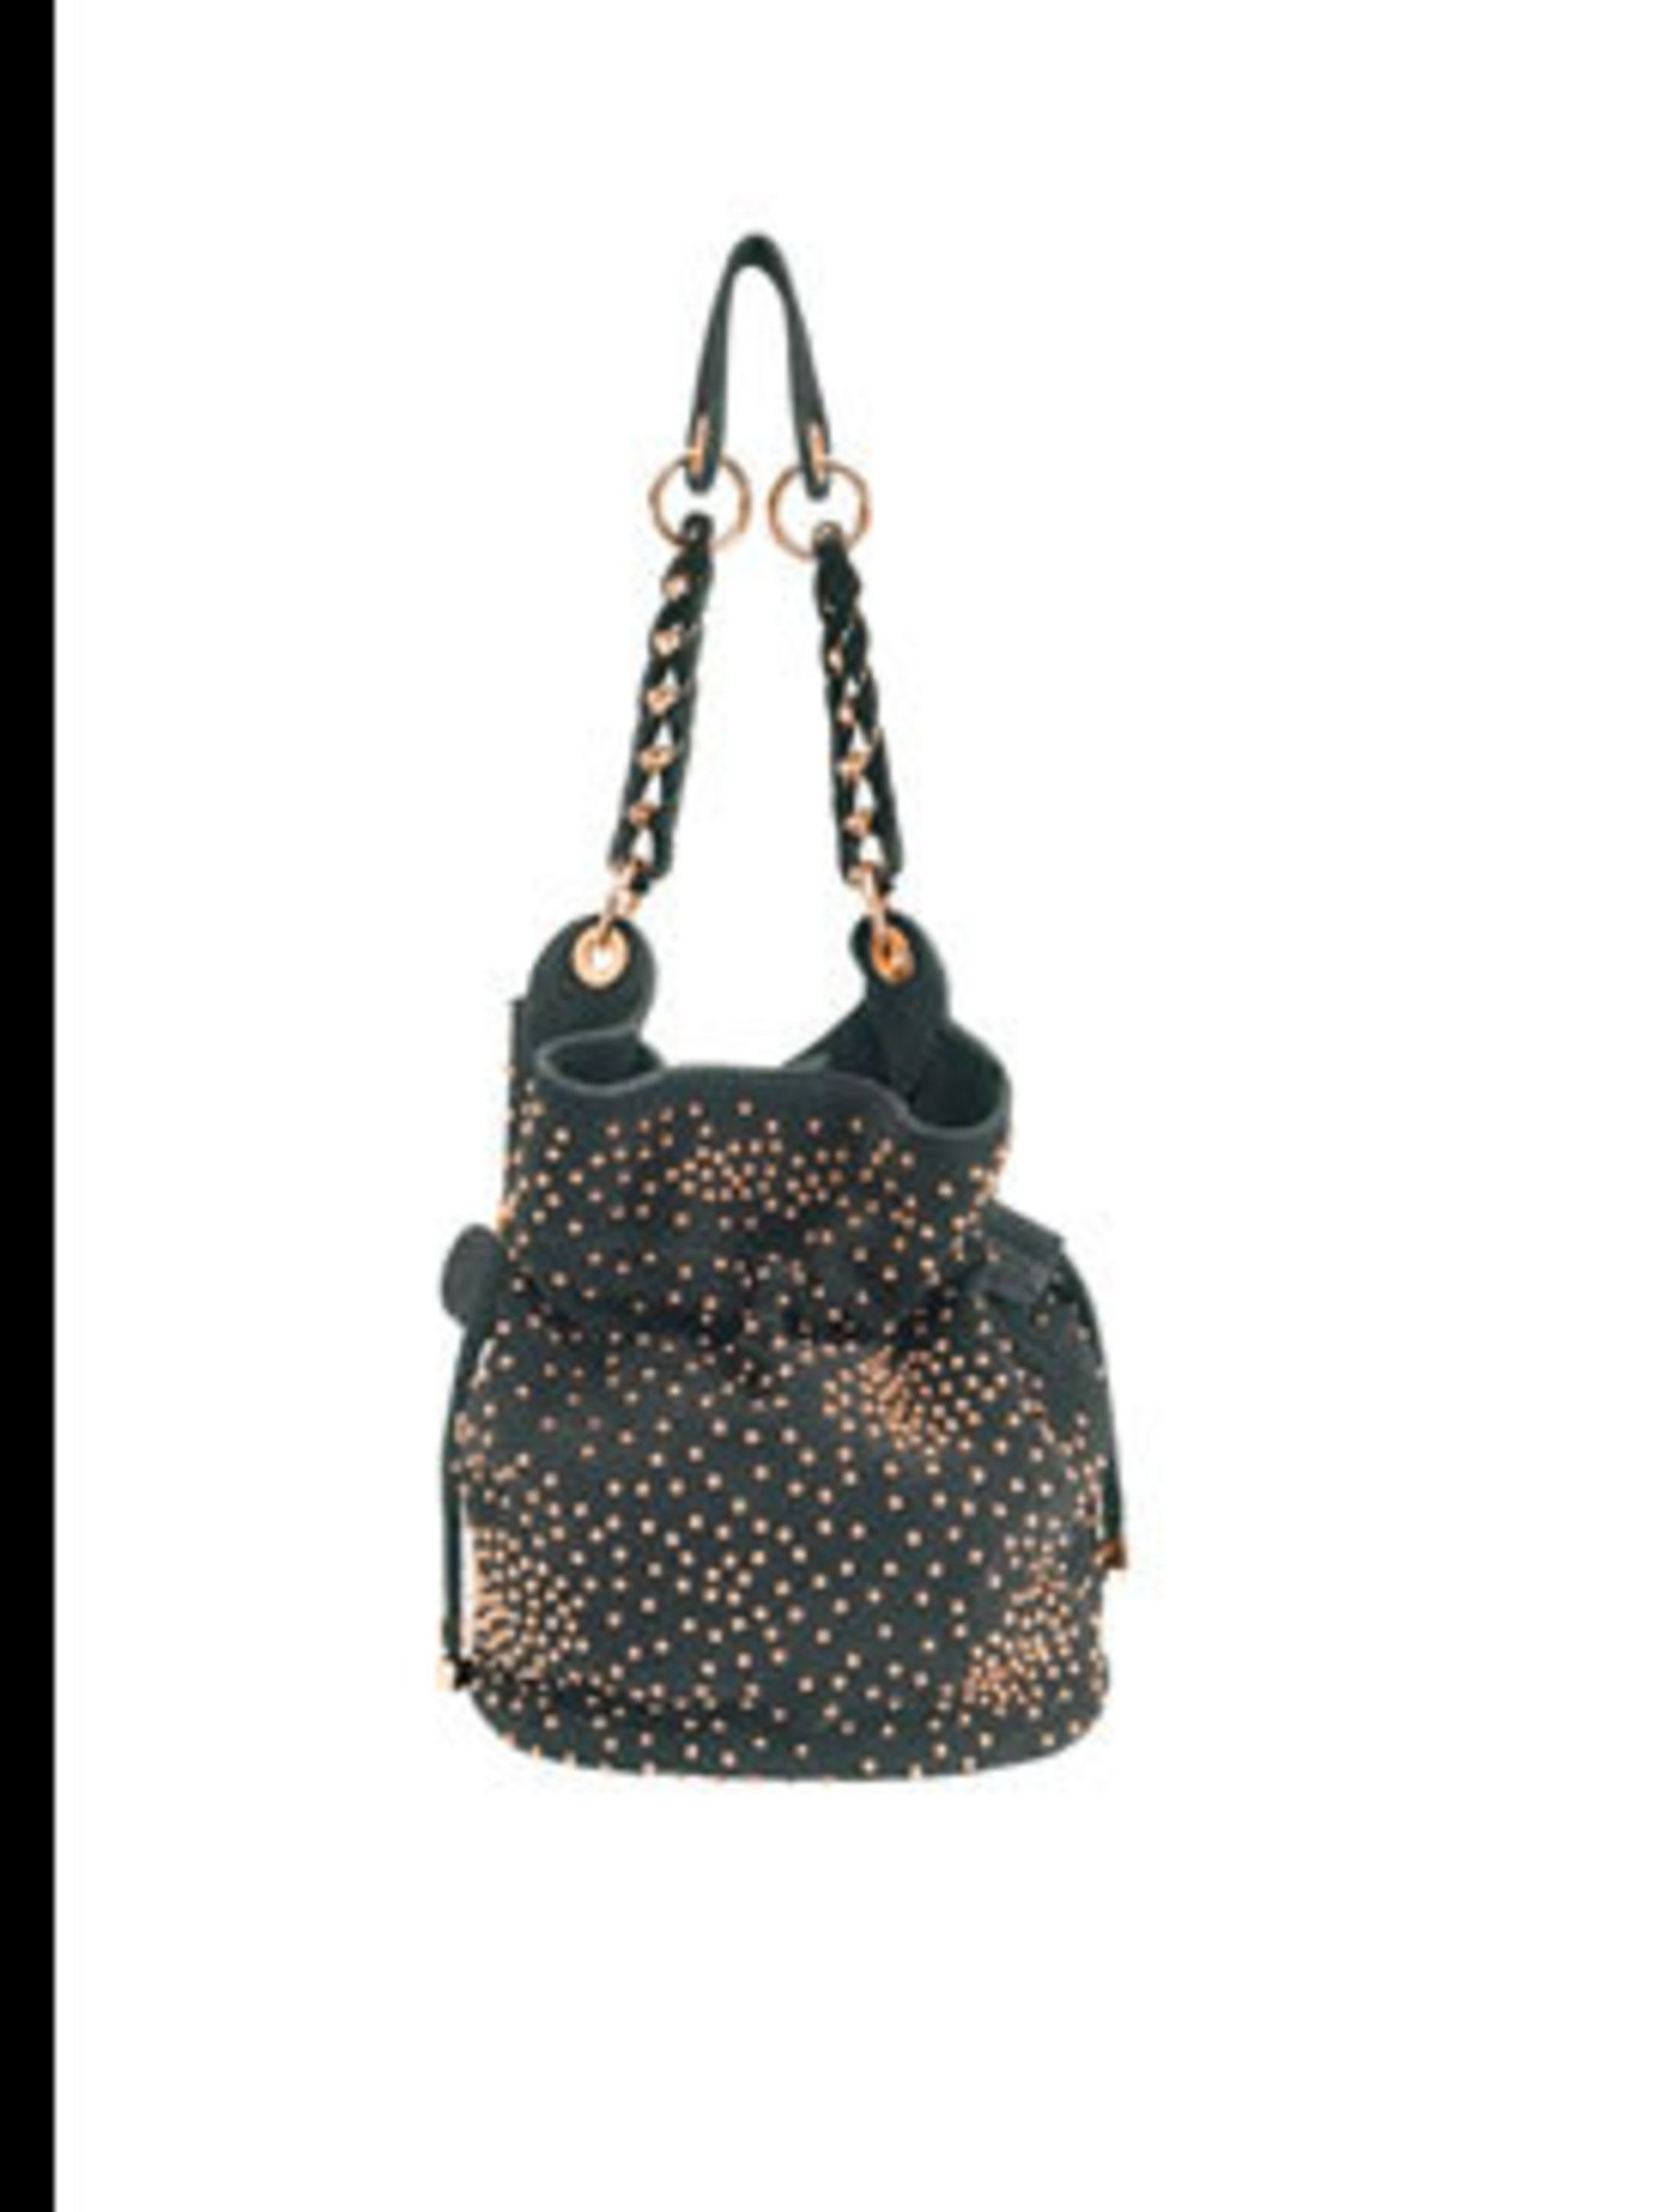 "<p>Black studded bag, £159, by <a href=""http://www.reiss.co.uk/shop/womens/bags/sabina/black/"">Reiss</a></p>"